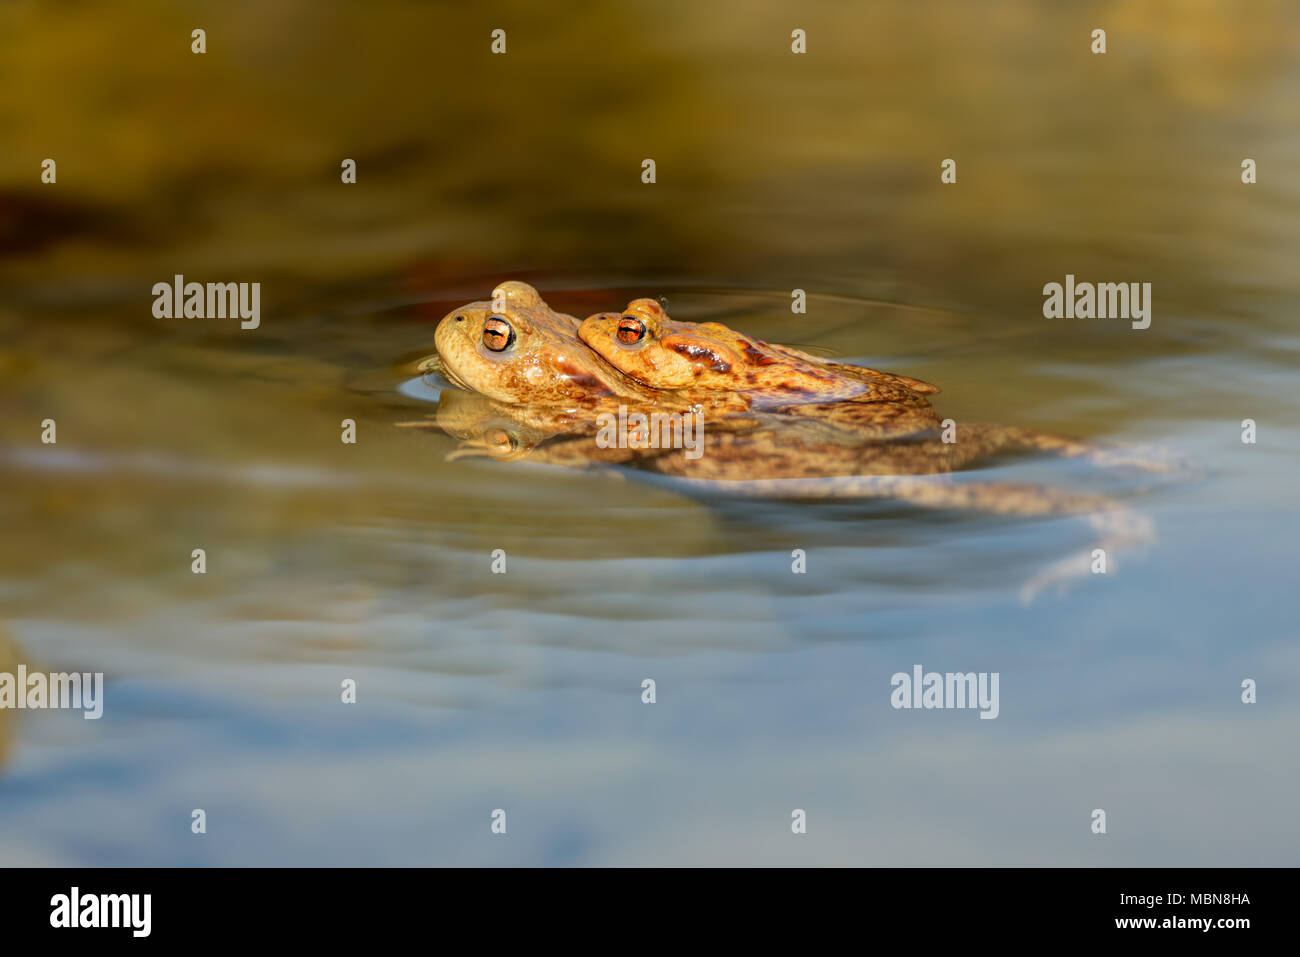 The Common Toad, European Toad, Toad - Bufo Bufo, is an amphibian found throughout most of Europe, in the western part of North Asia, and in a small p - Stock Image